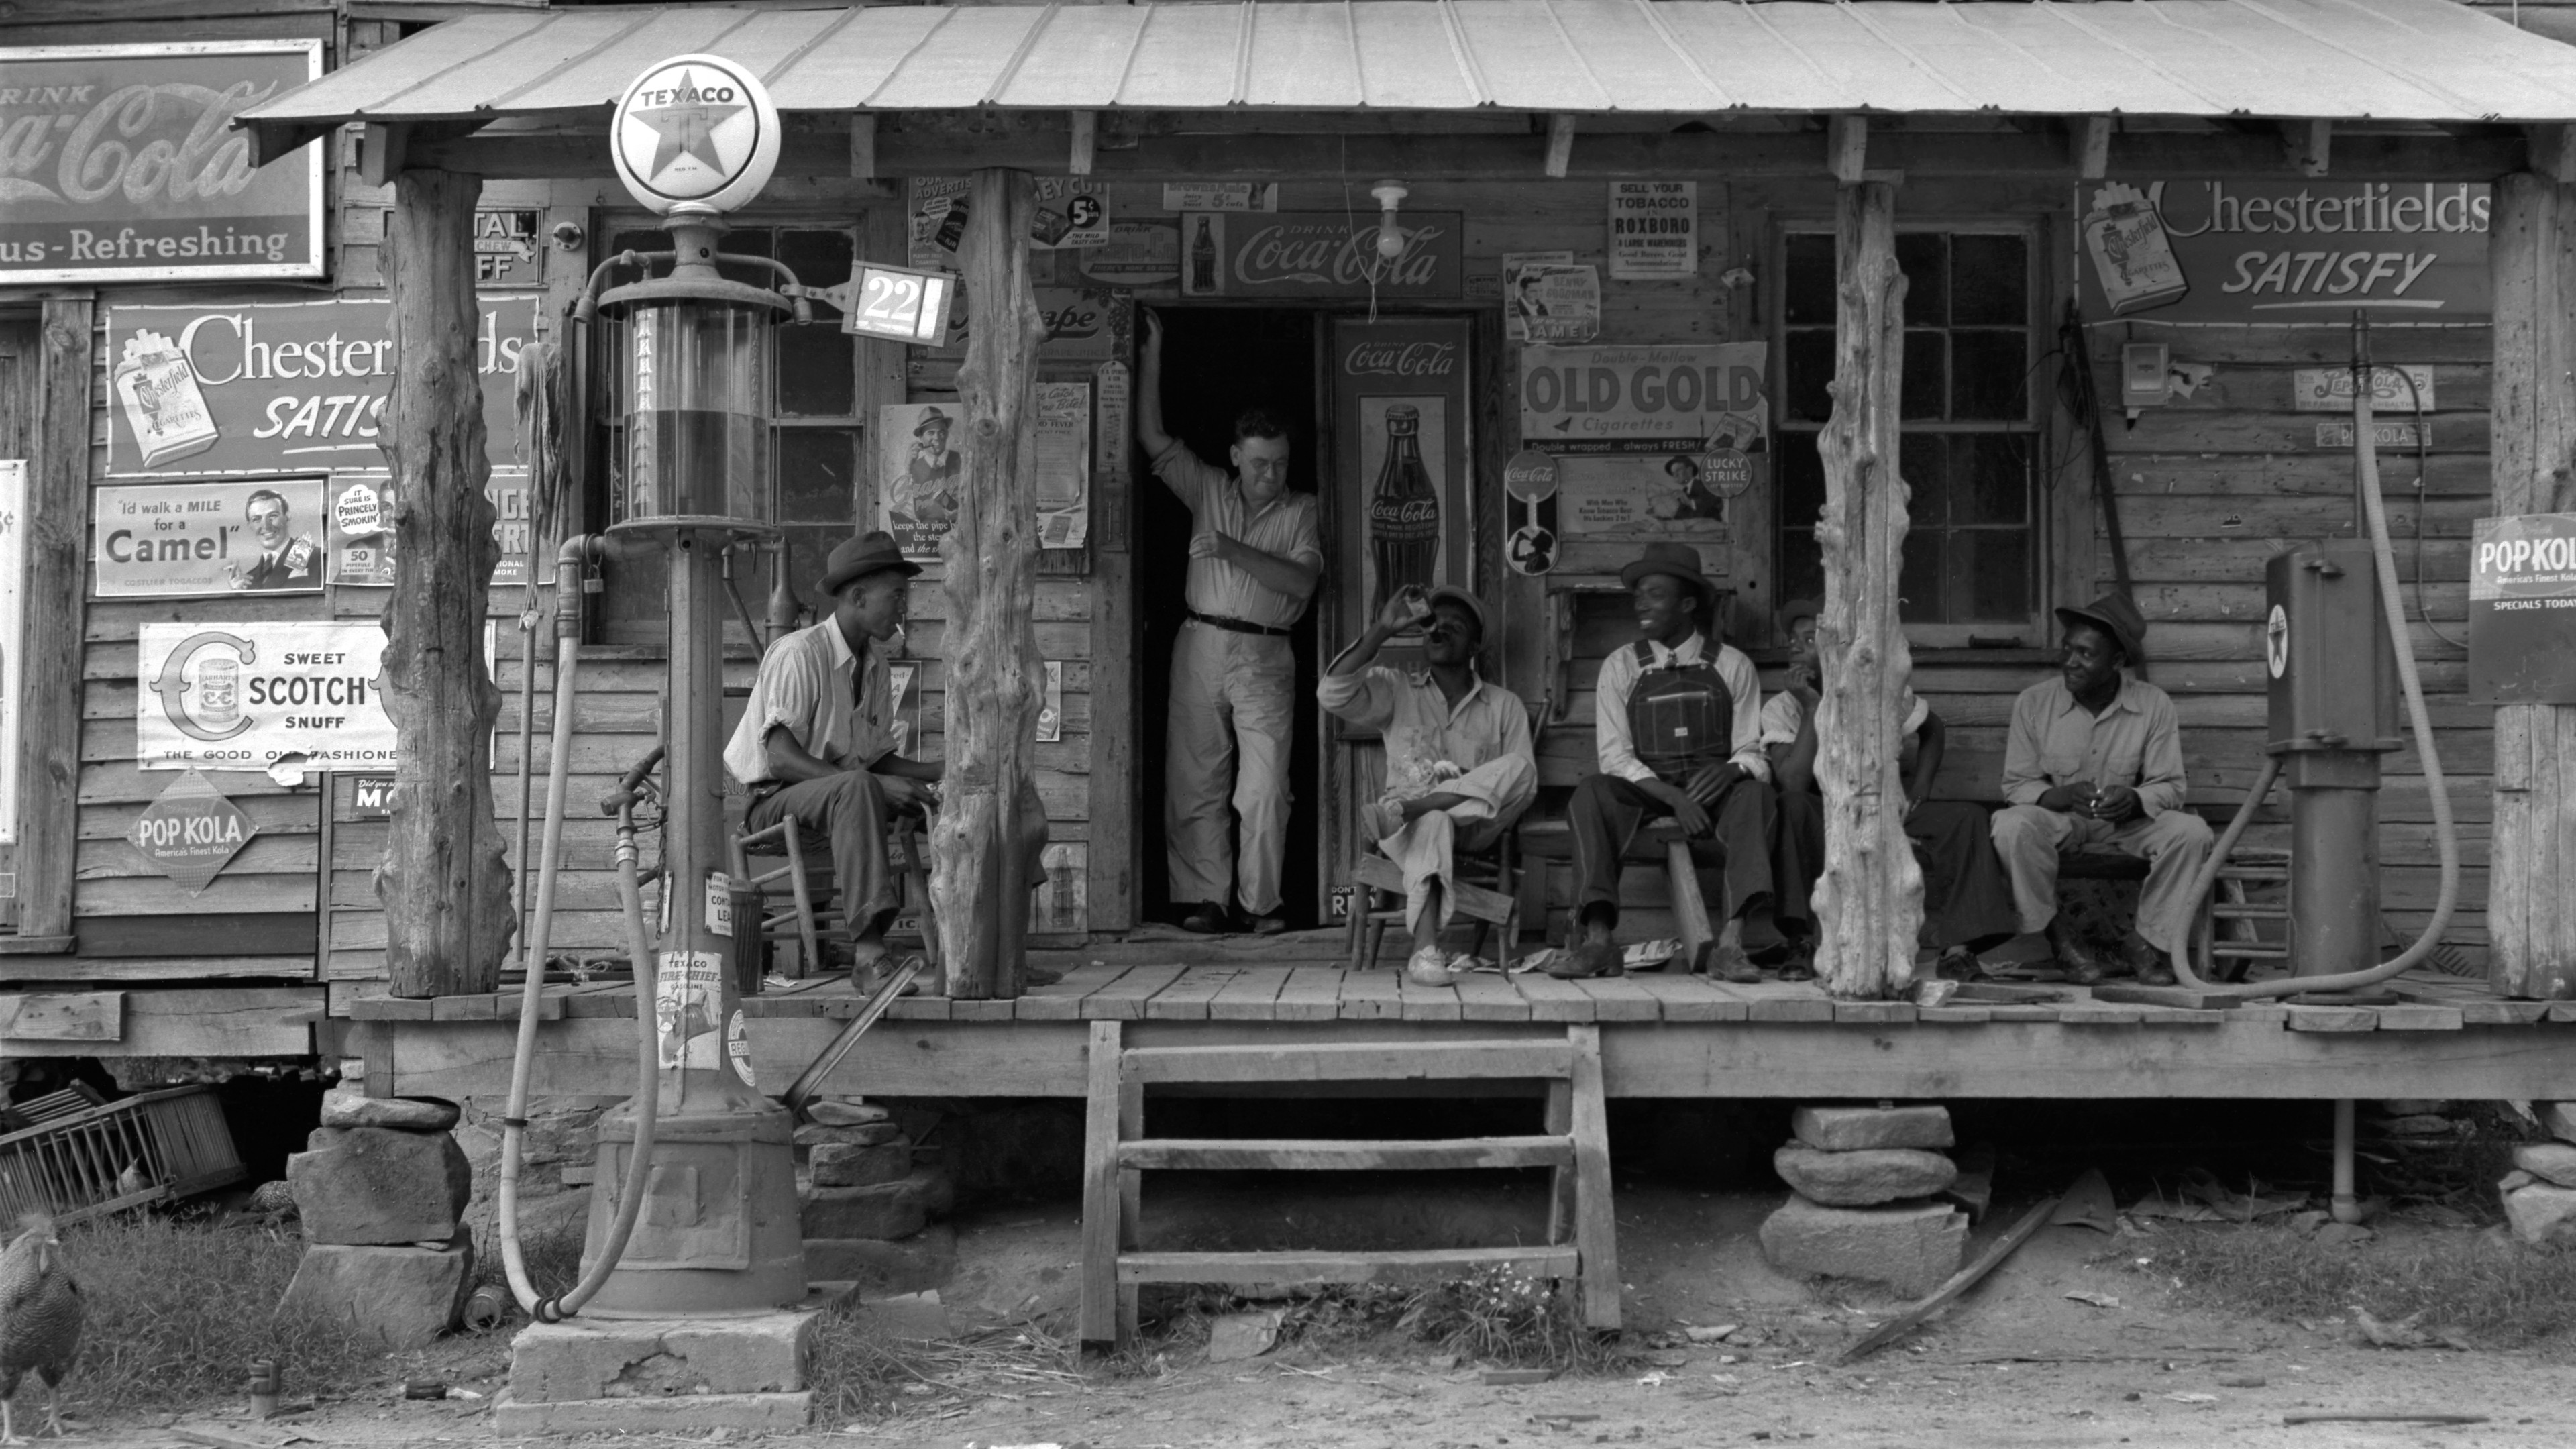 http://cinegrafix.eu/wp-content/uploads/2017/01/20100319-Dorothea_Lange_Country_store_on_dirt_road_Gordonton_North_Carolina_1939-e1503942533869.jpg